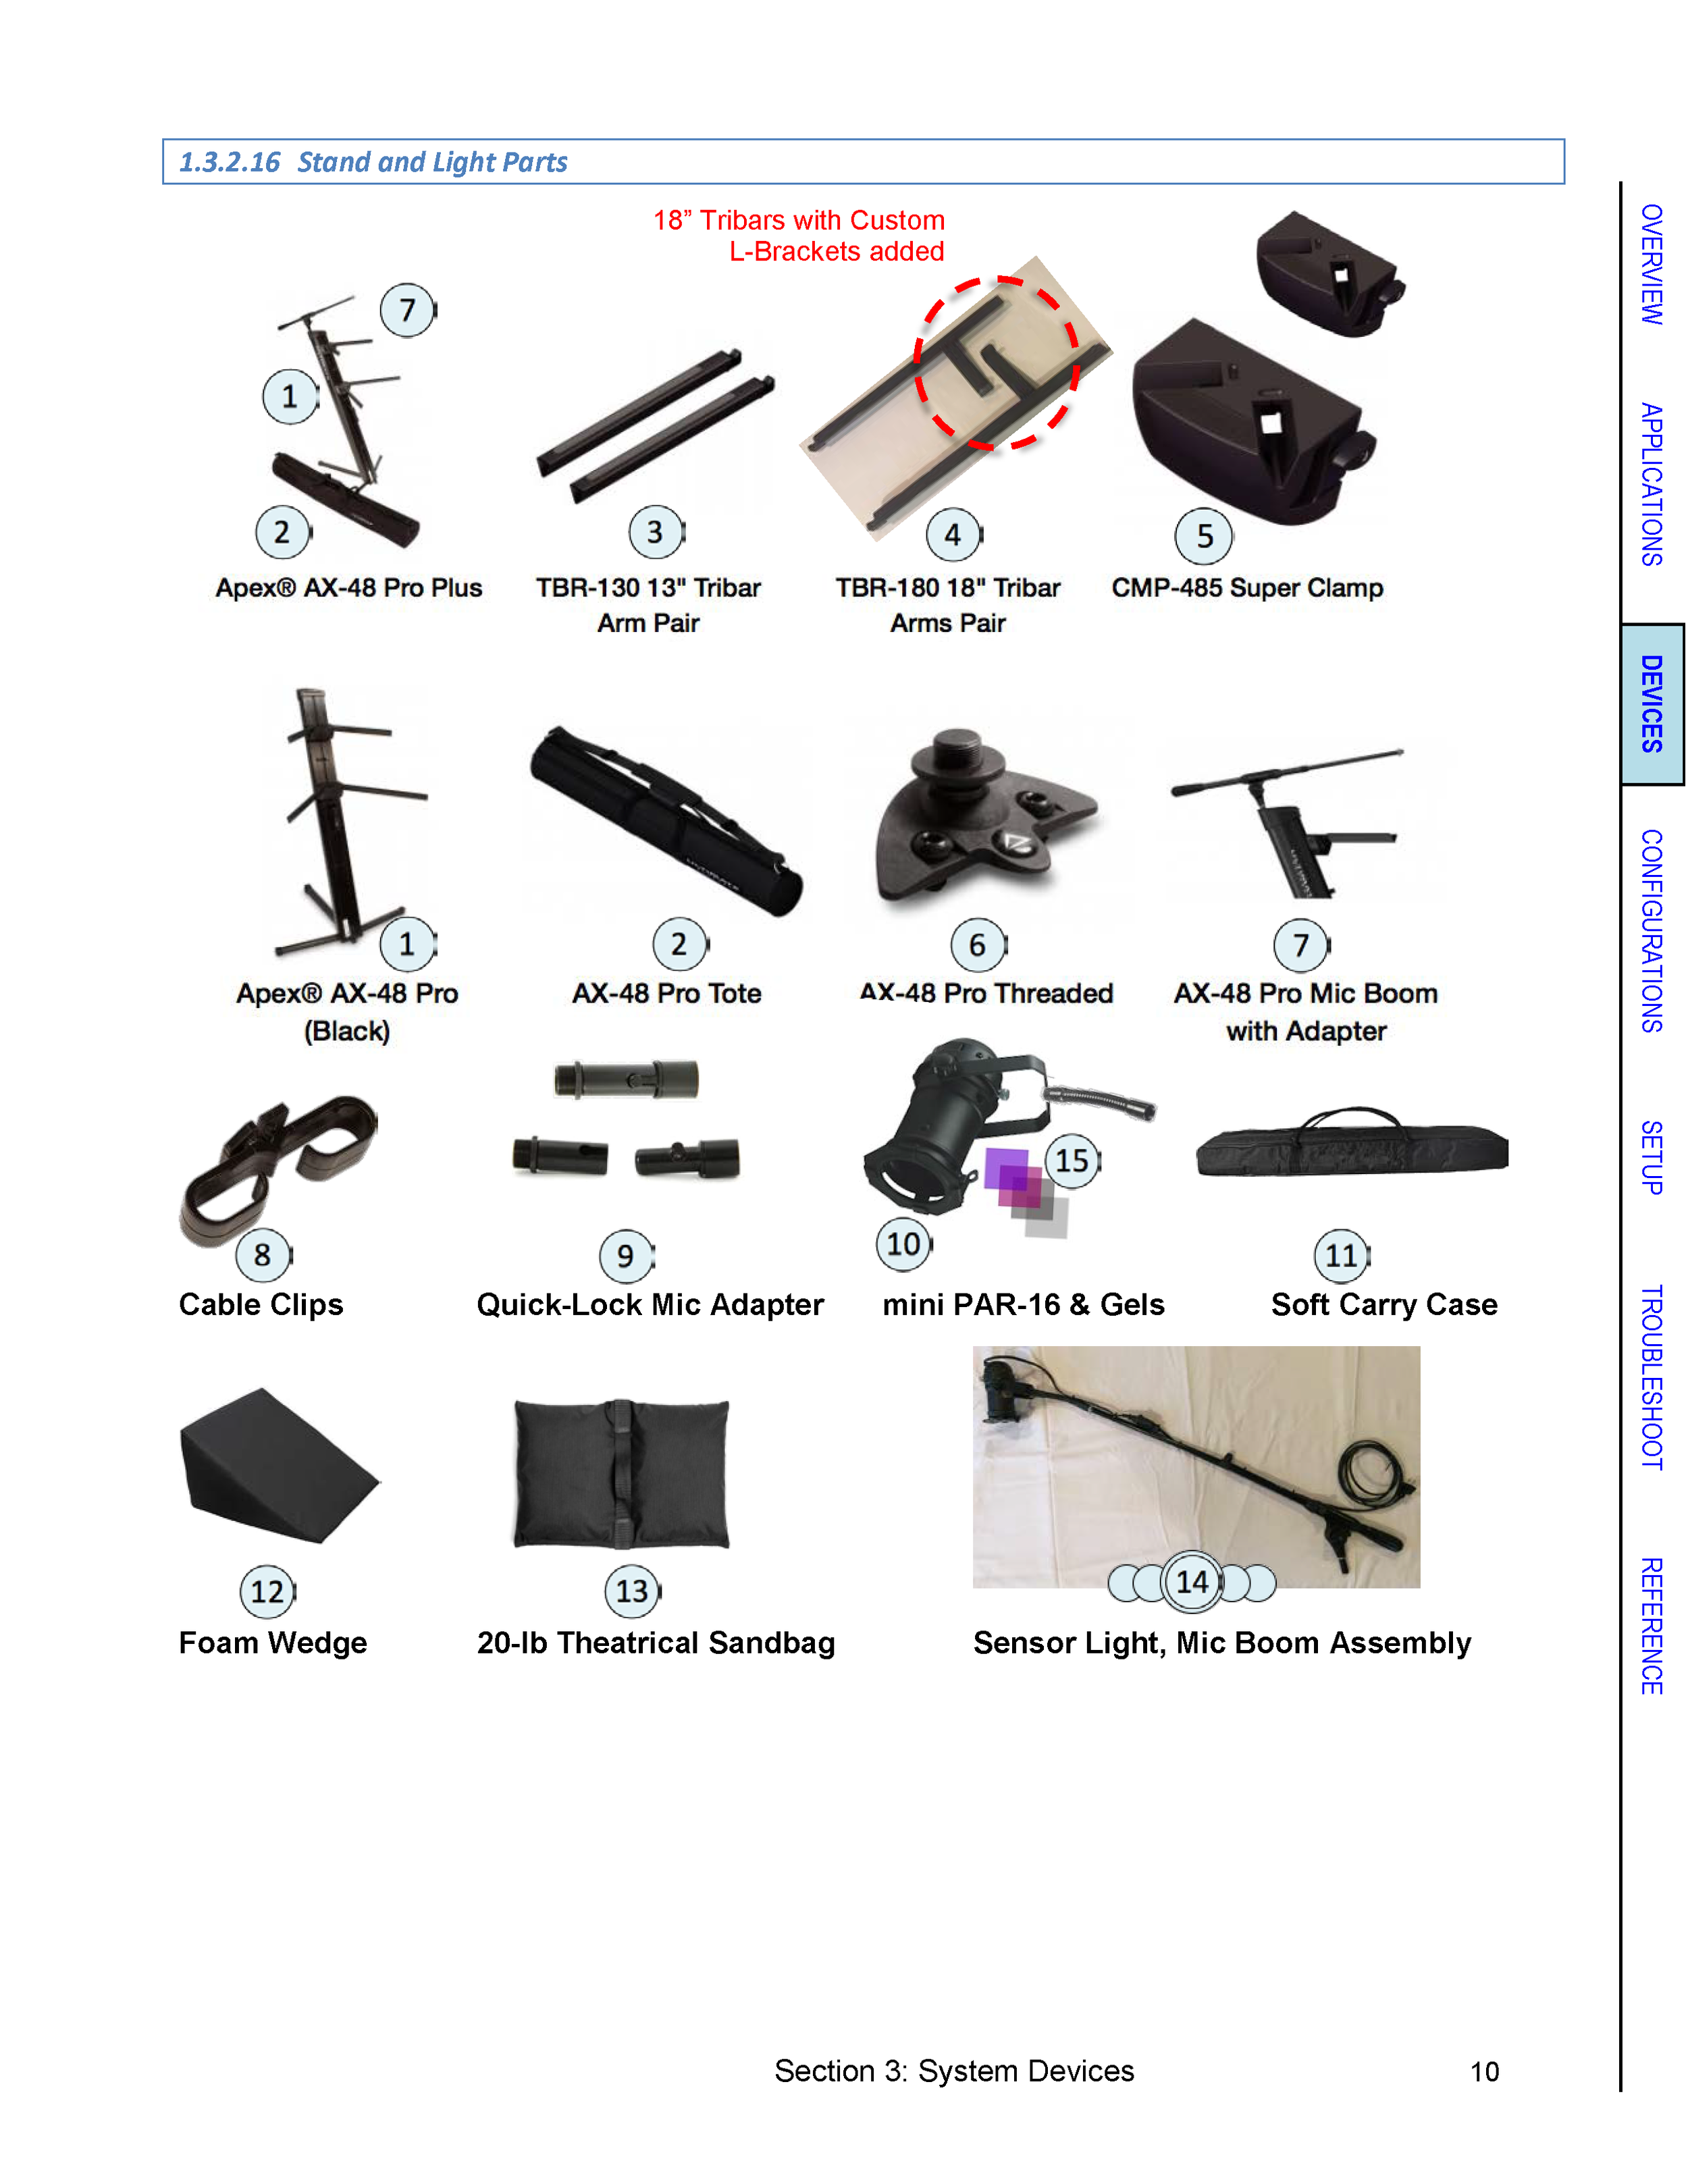 SpaceHarp_Systems_User_Guide_Oct-9th-2017_released_Page_10.png